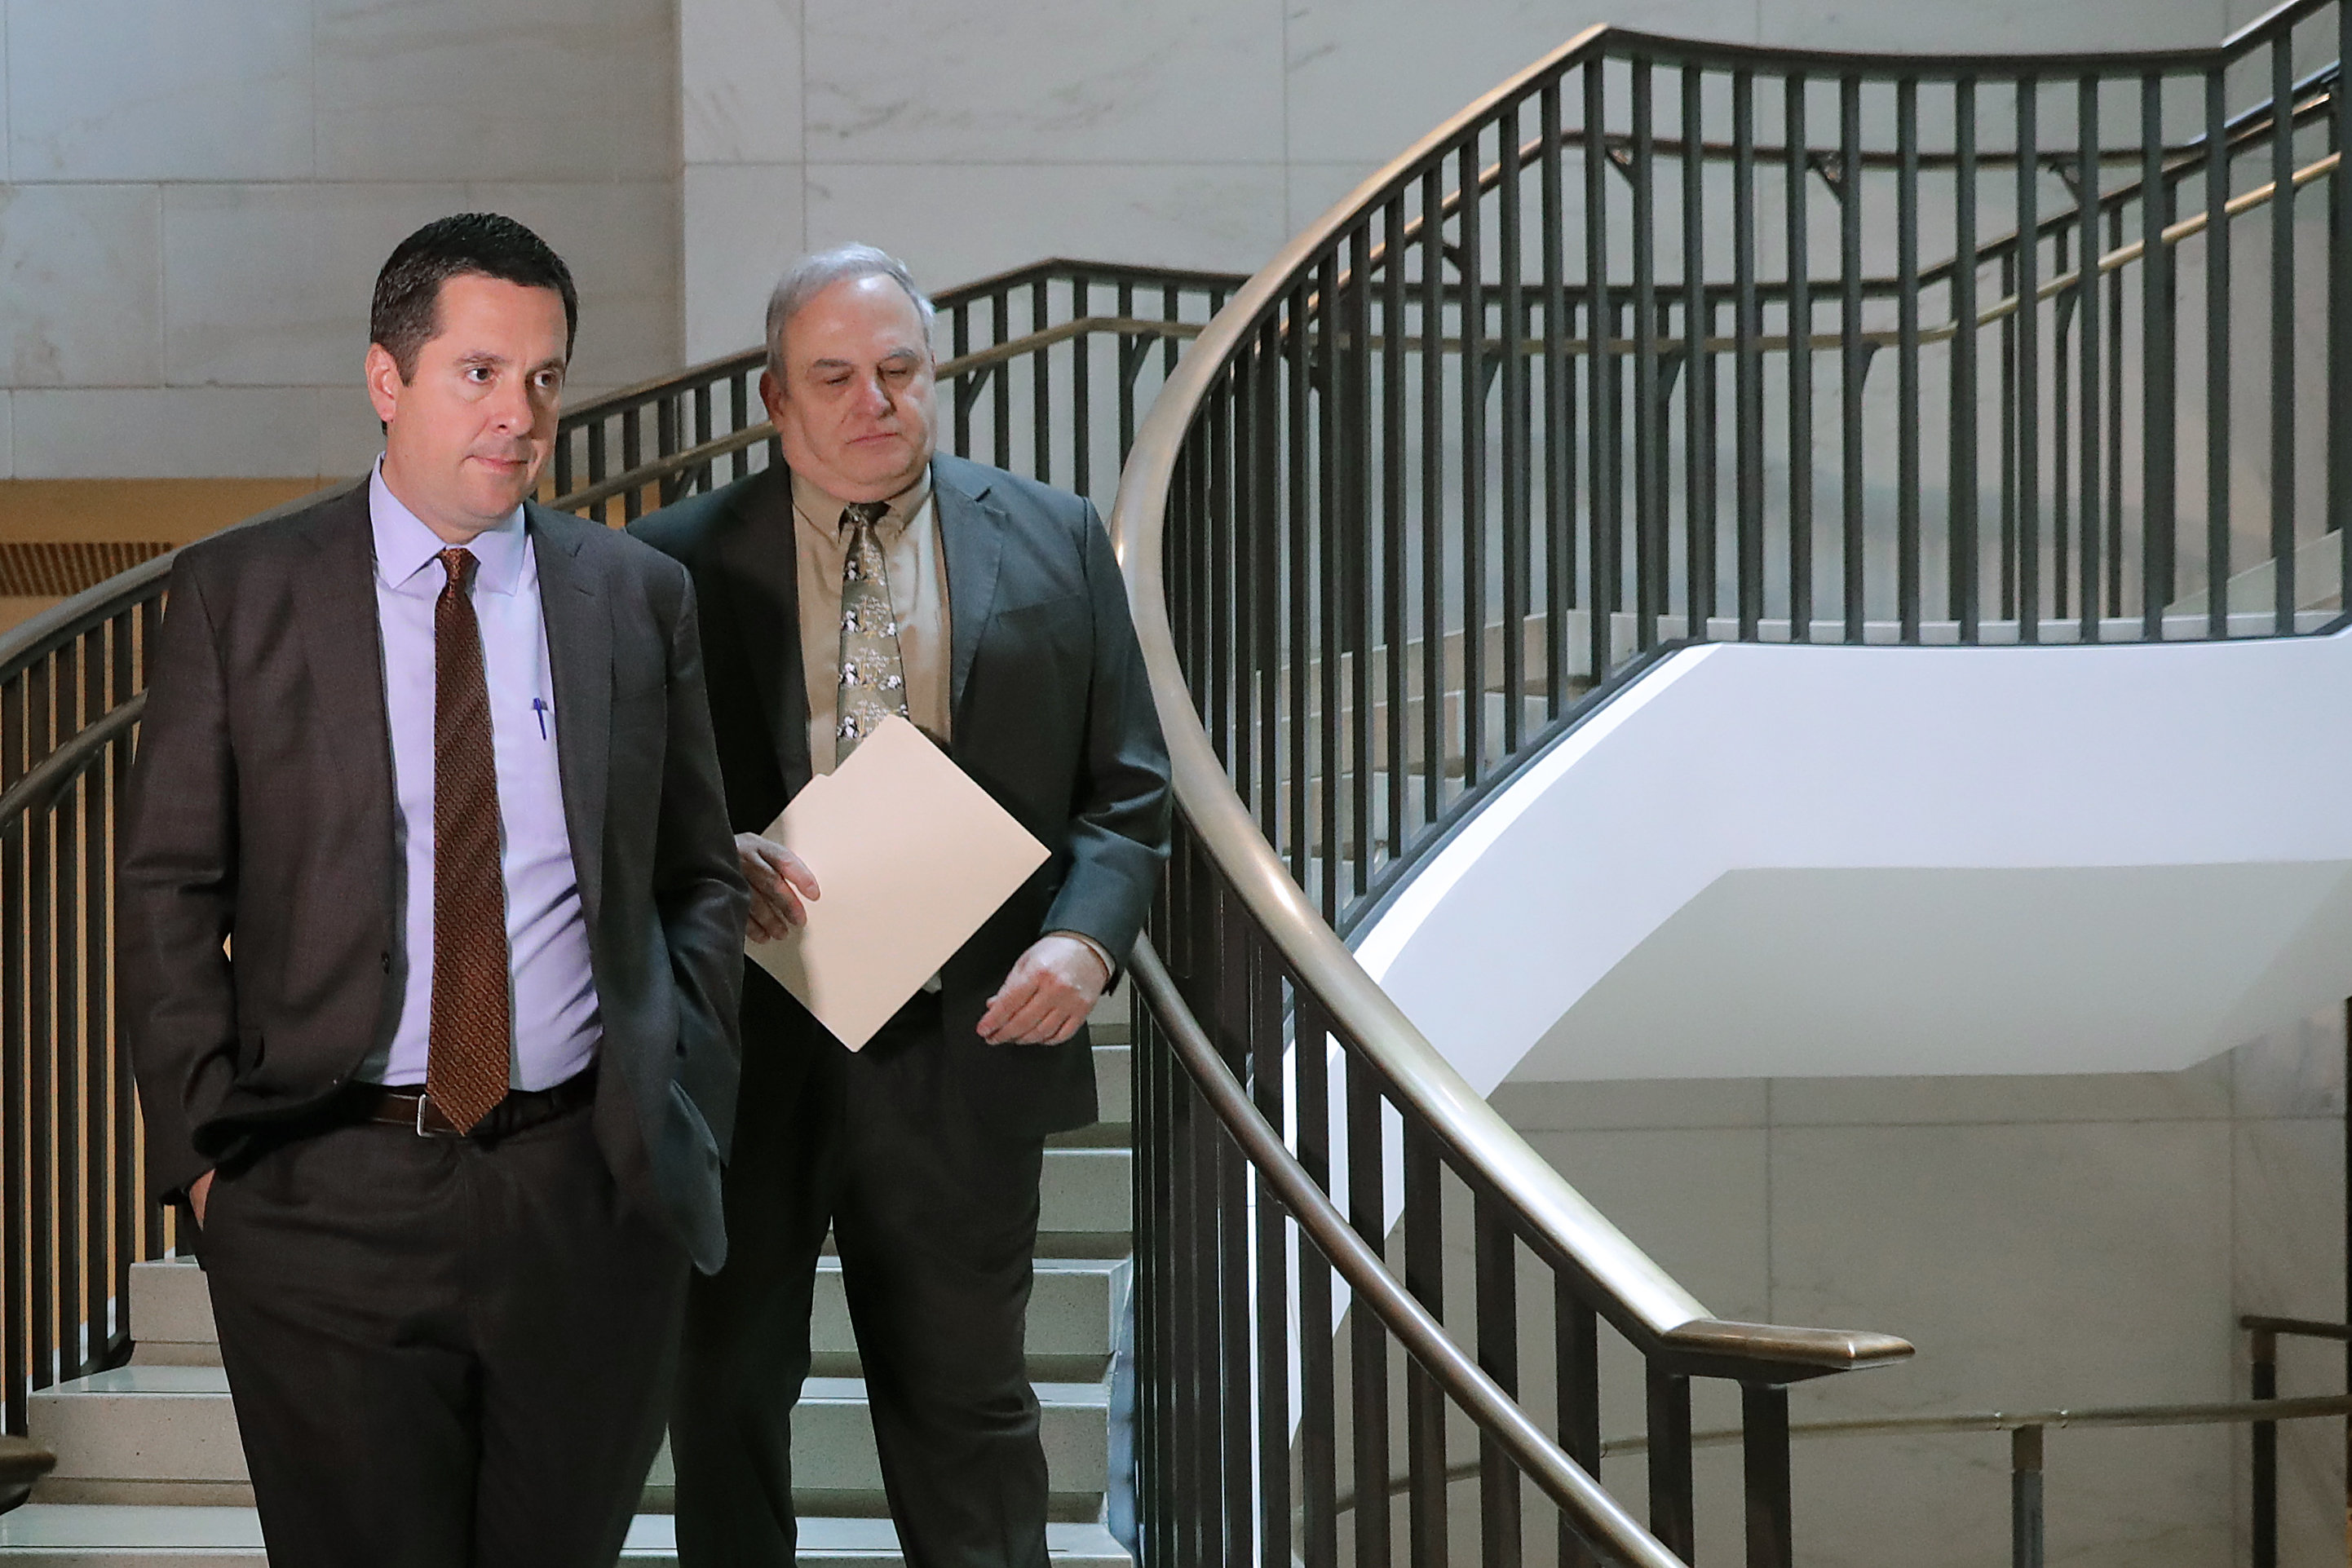 House Intelligence Committee ranking member Rep. Devin Nunes (L) arrives for a closed-door hearing with Michael Cohen, former attorney and fixer for President Donald Trump, in the basement of the House Visitors Center at the U.S. Capitol March 06, 2019 in Washington, DC. (Photo by Chip Somodevilla/Getty Images)